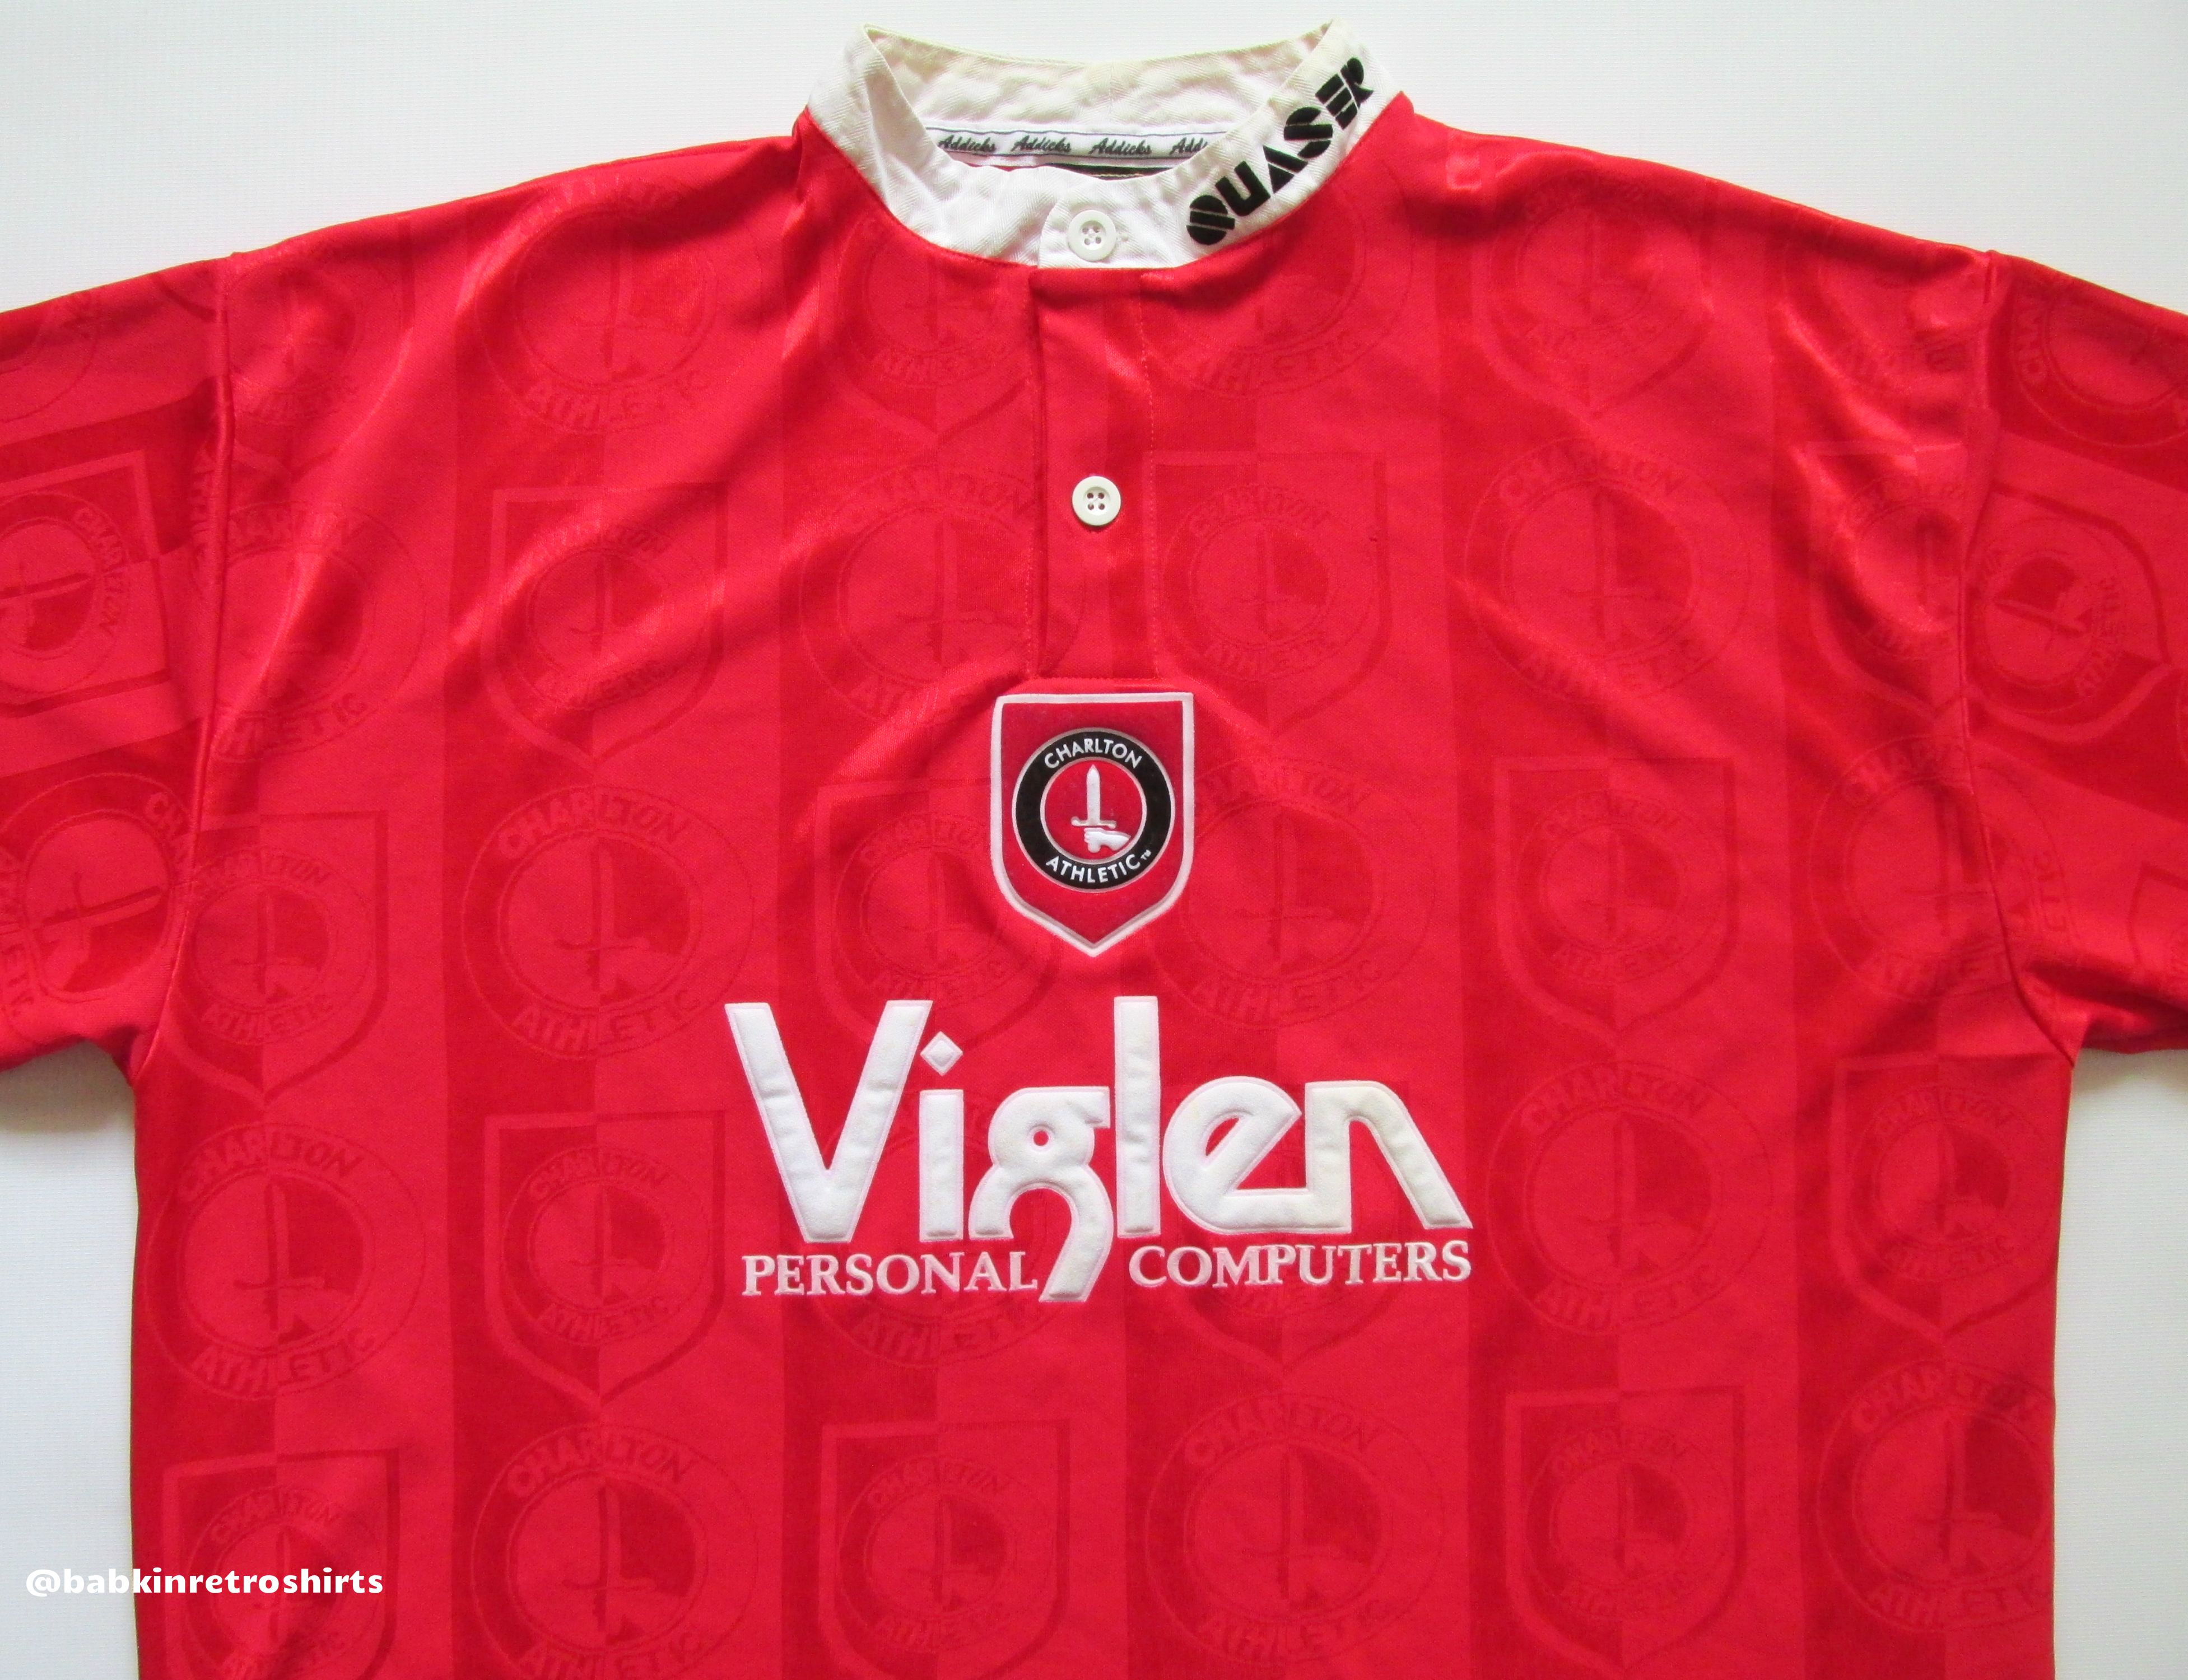 610a039b5 Charlton Athletic 1996/1997/1998 home football shirt by Quaser vintage 90s  soccer retro jersey UK #vintage #vintagestyle #soccer #football #jersey # shirts # ...